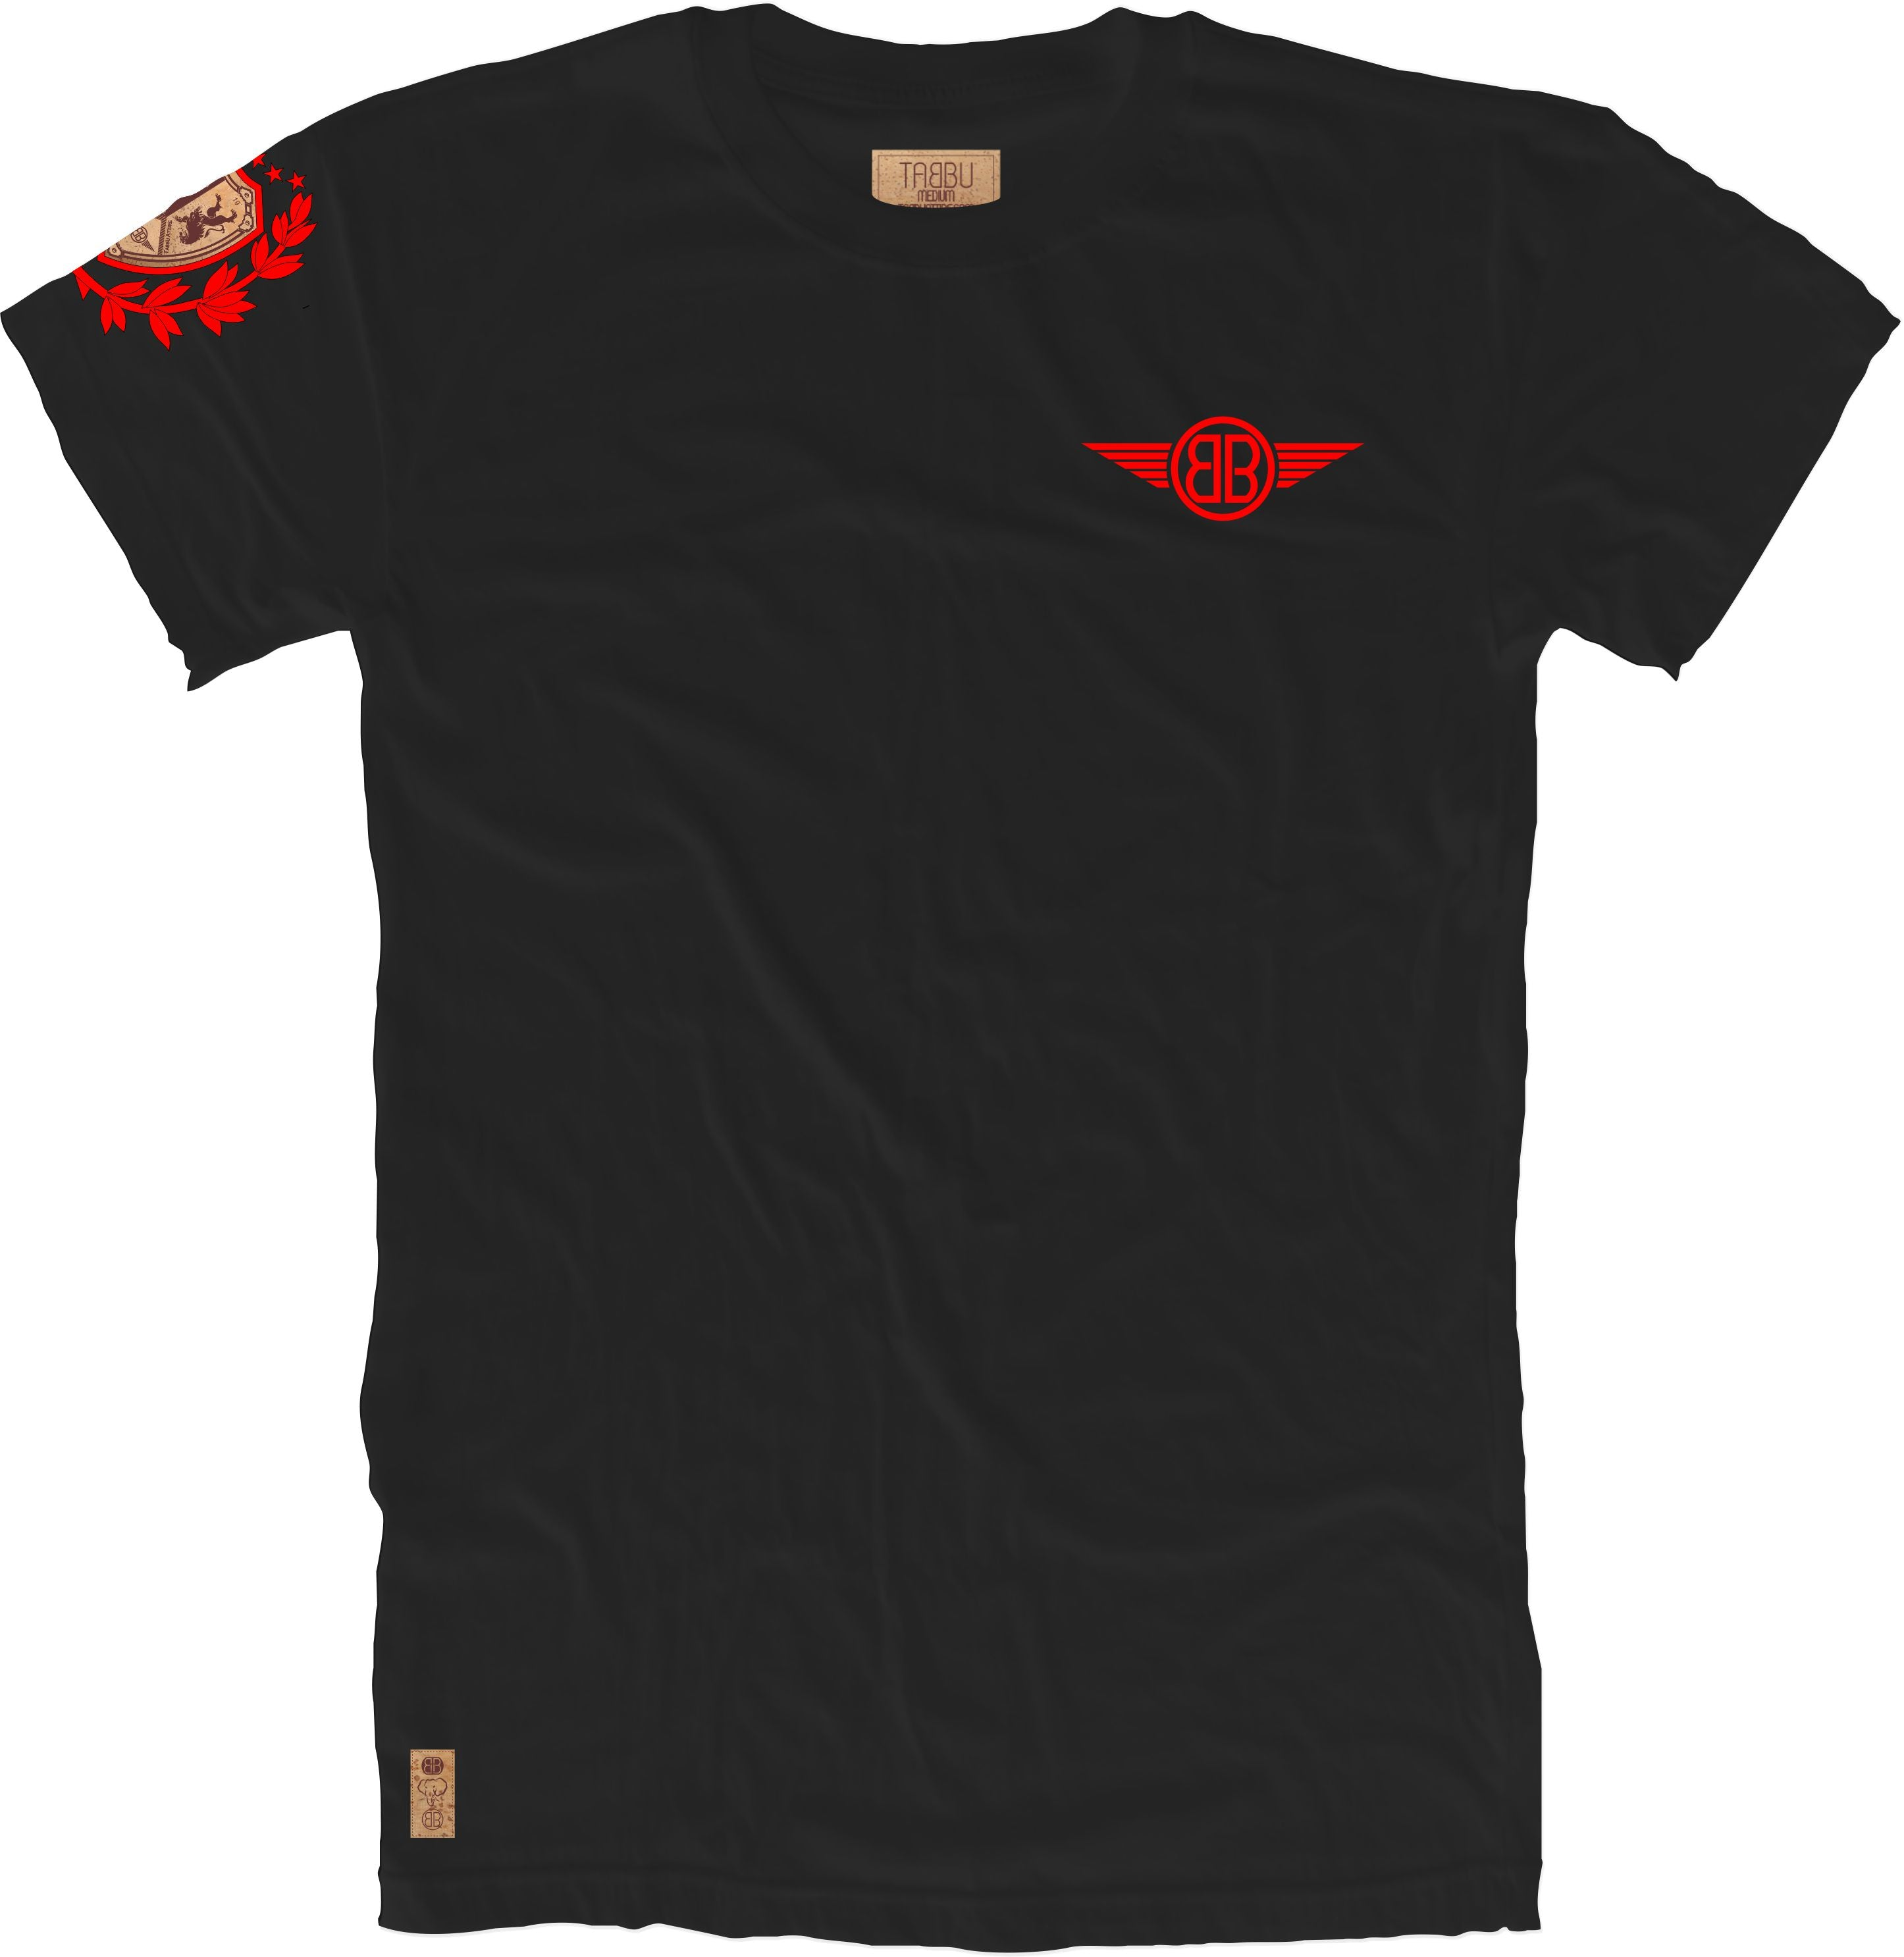 Lion Cork Shield Crewneck Tee in Black with Red Embroidery